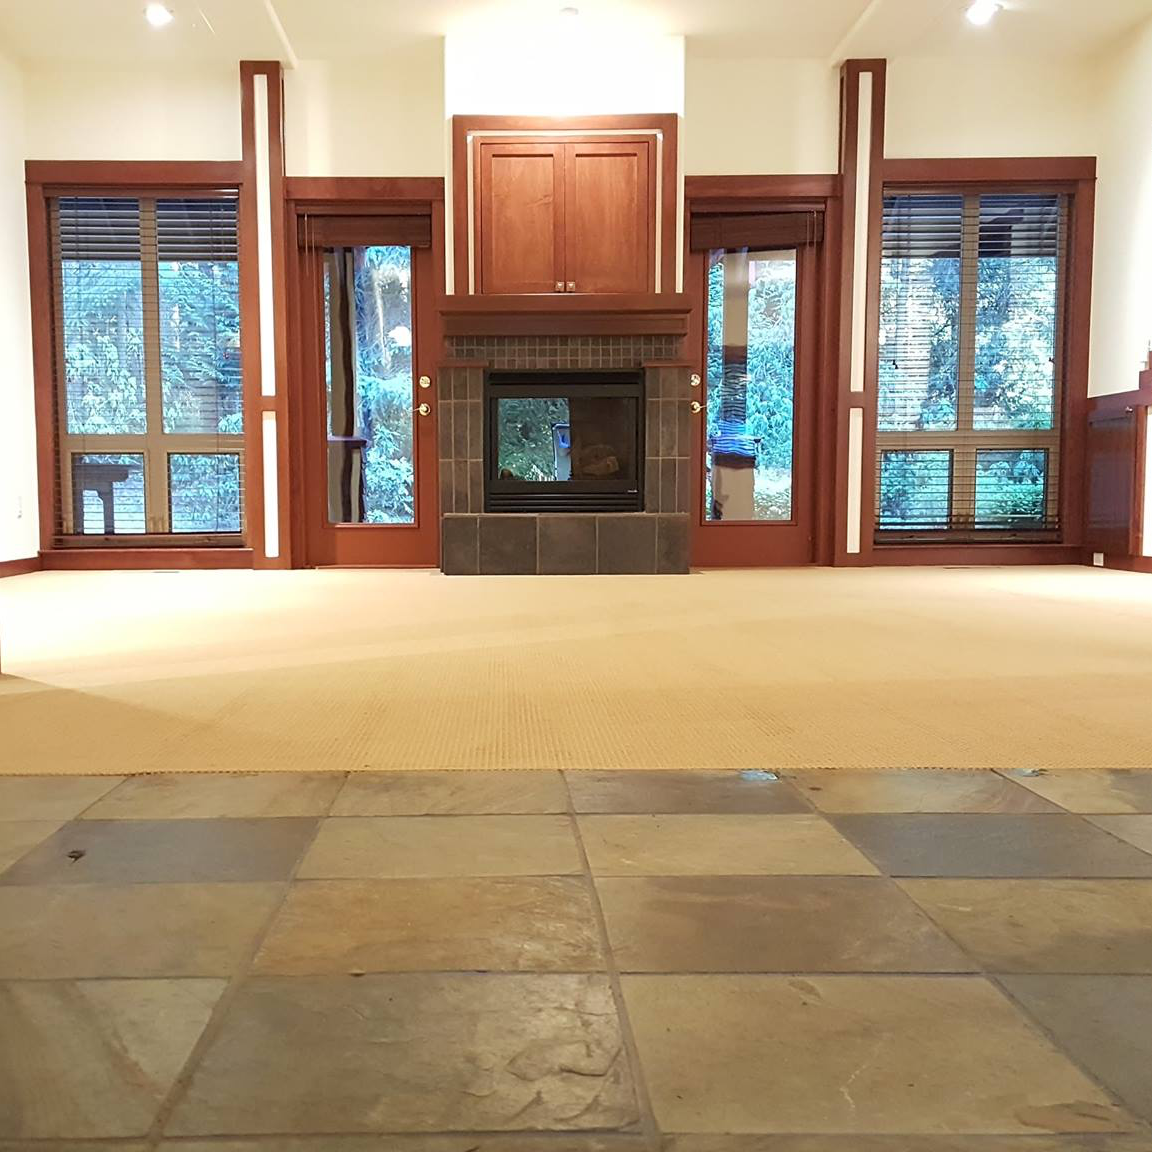 bellingham carpet cleaning project by northwest cleaning services